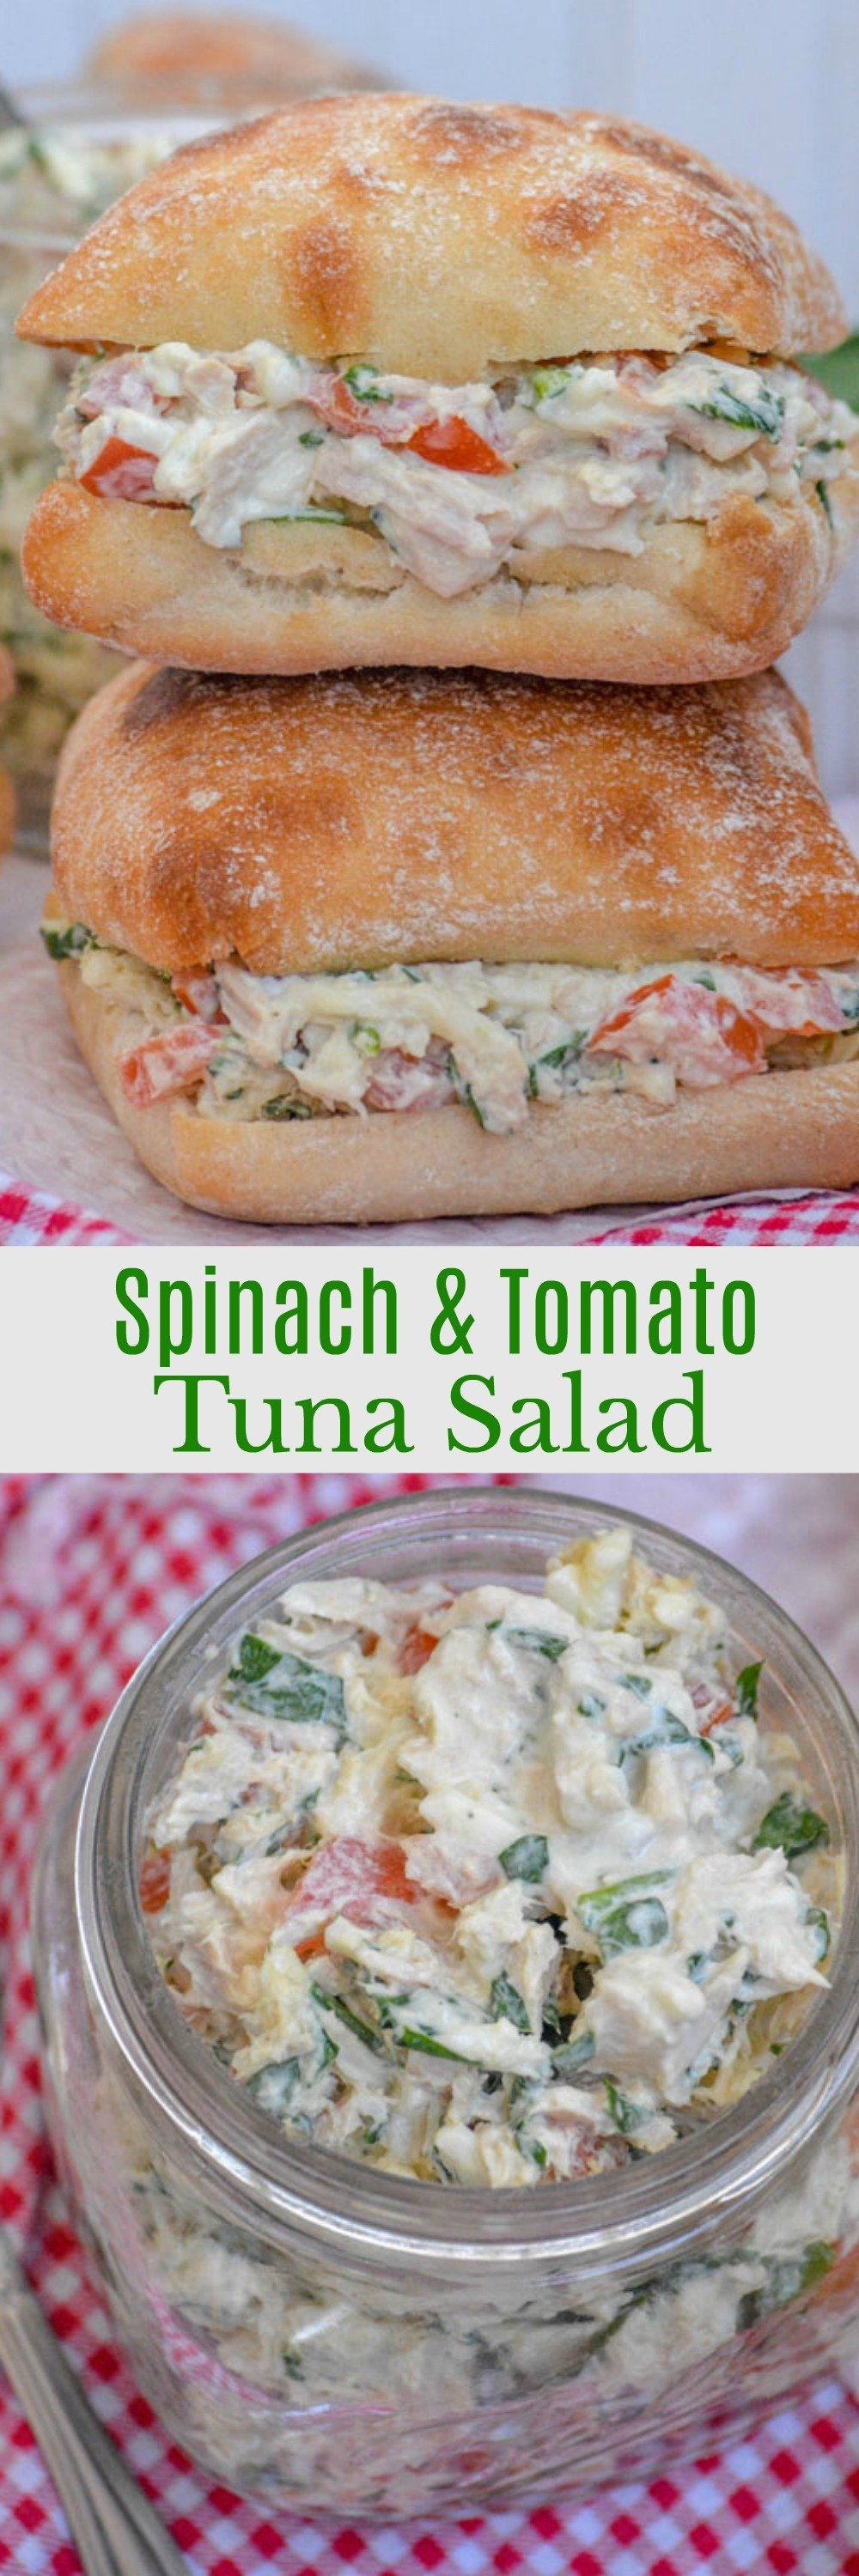 Sometimes life is busy, busier even than I anticipate on my busiest day. Luckily, I've got these 10 minute, healthy Spinach & Tomato Tuna Salad Sandwiches on hand for lunch or dinner.